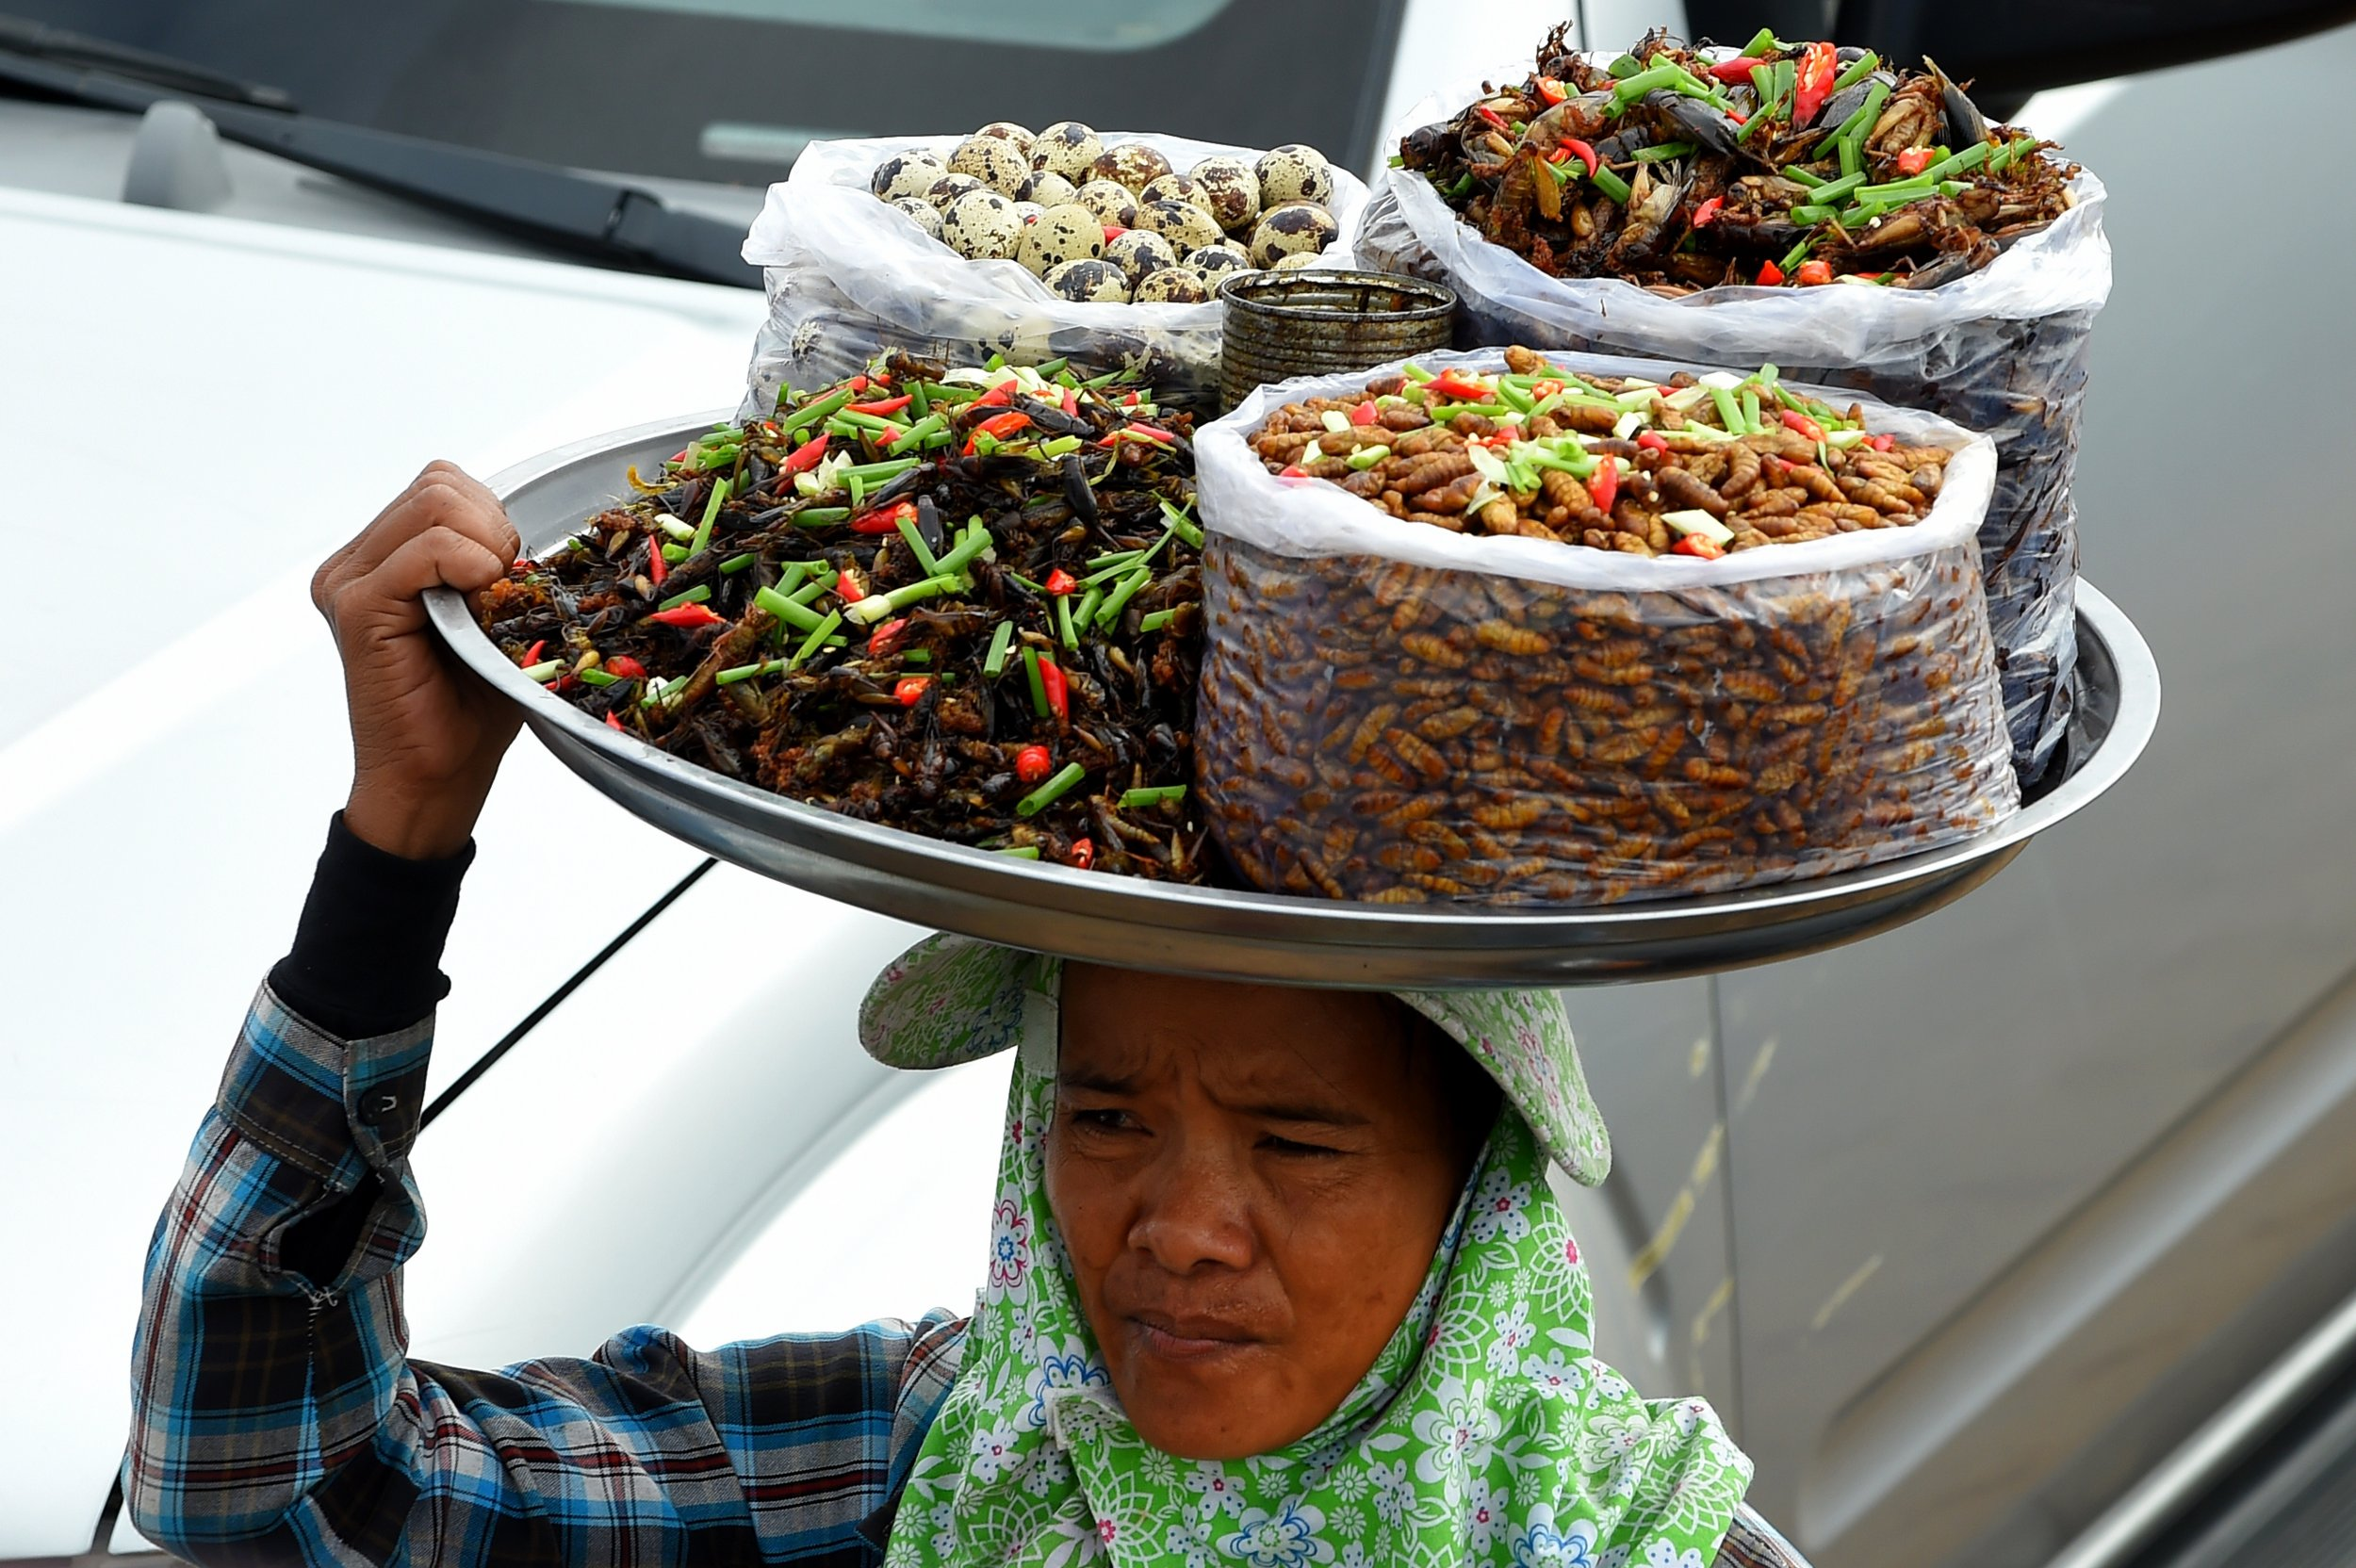 Eating Insects Could Help Fight World Hunger